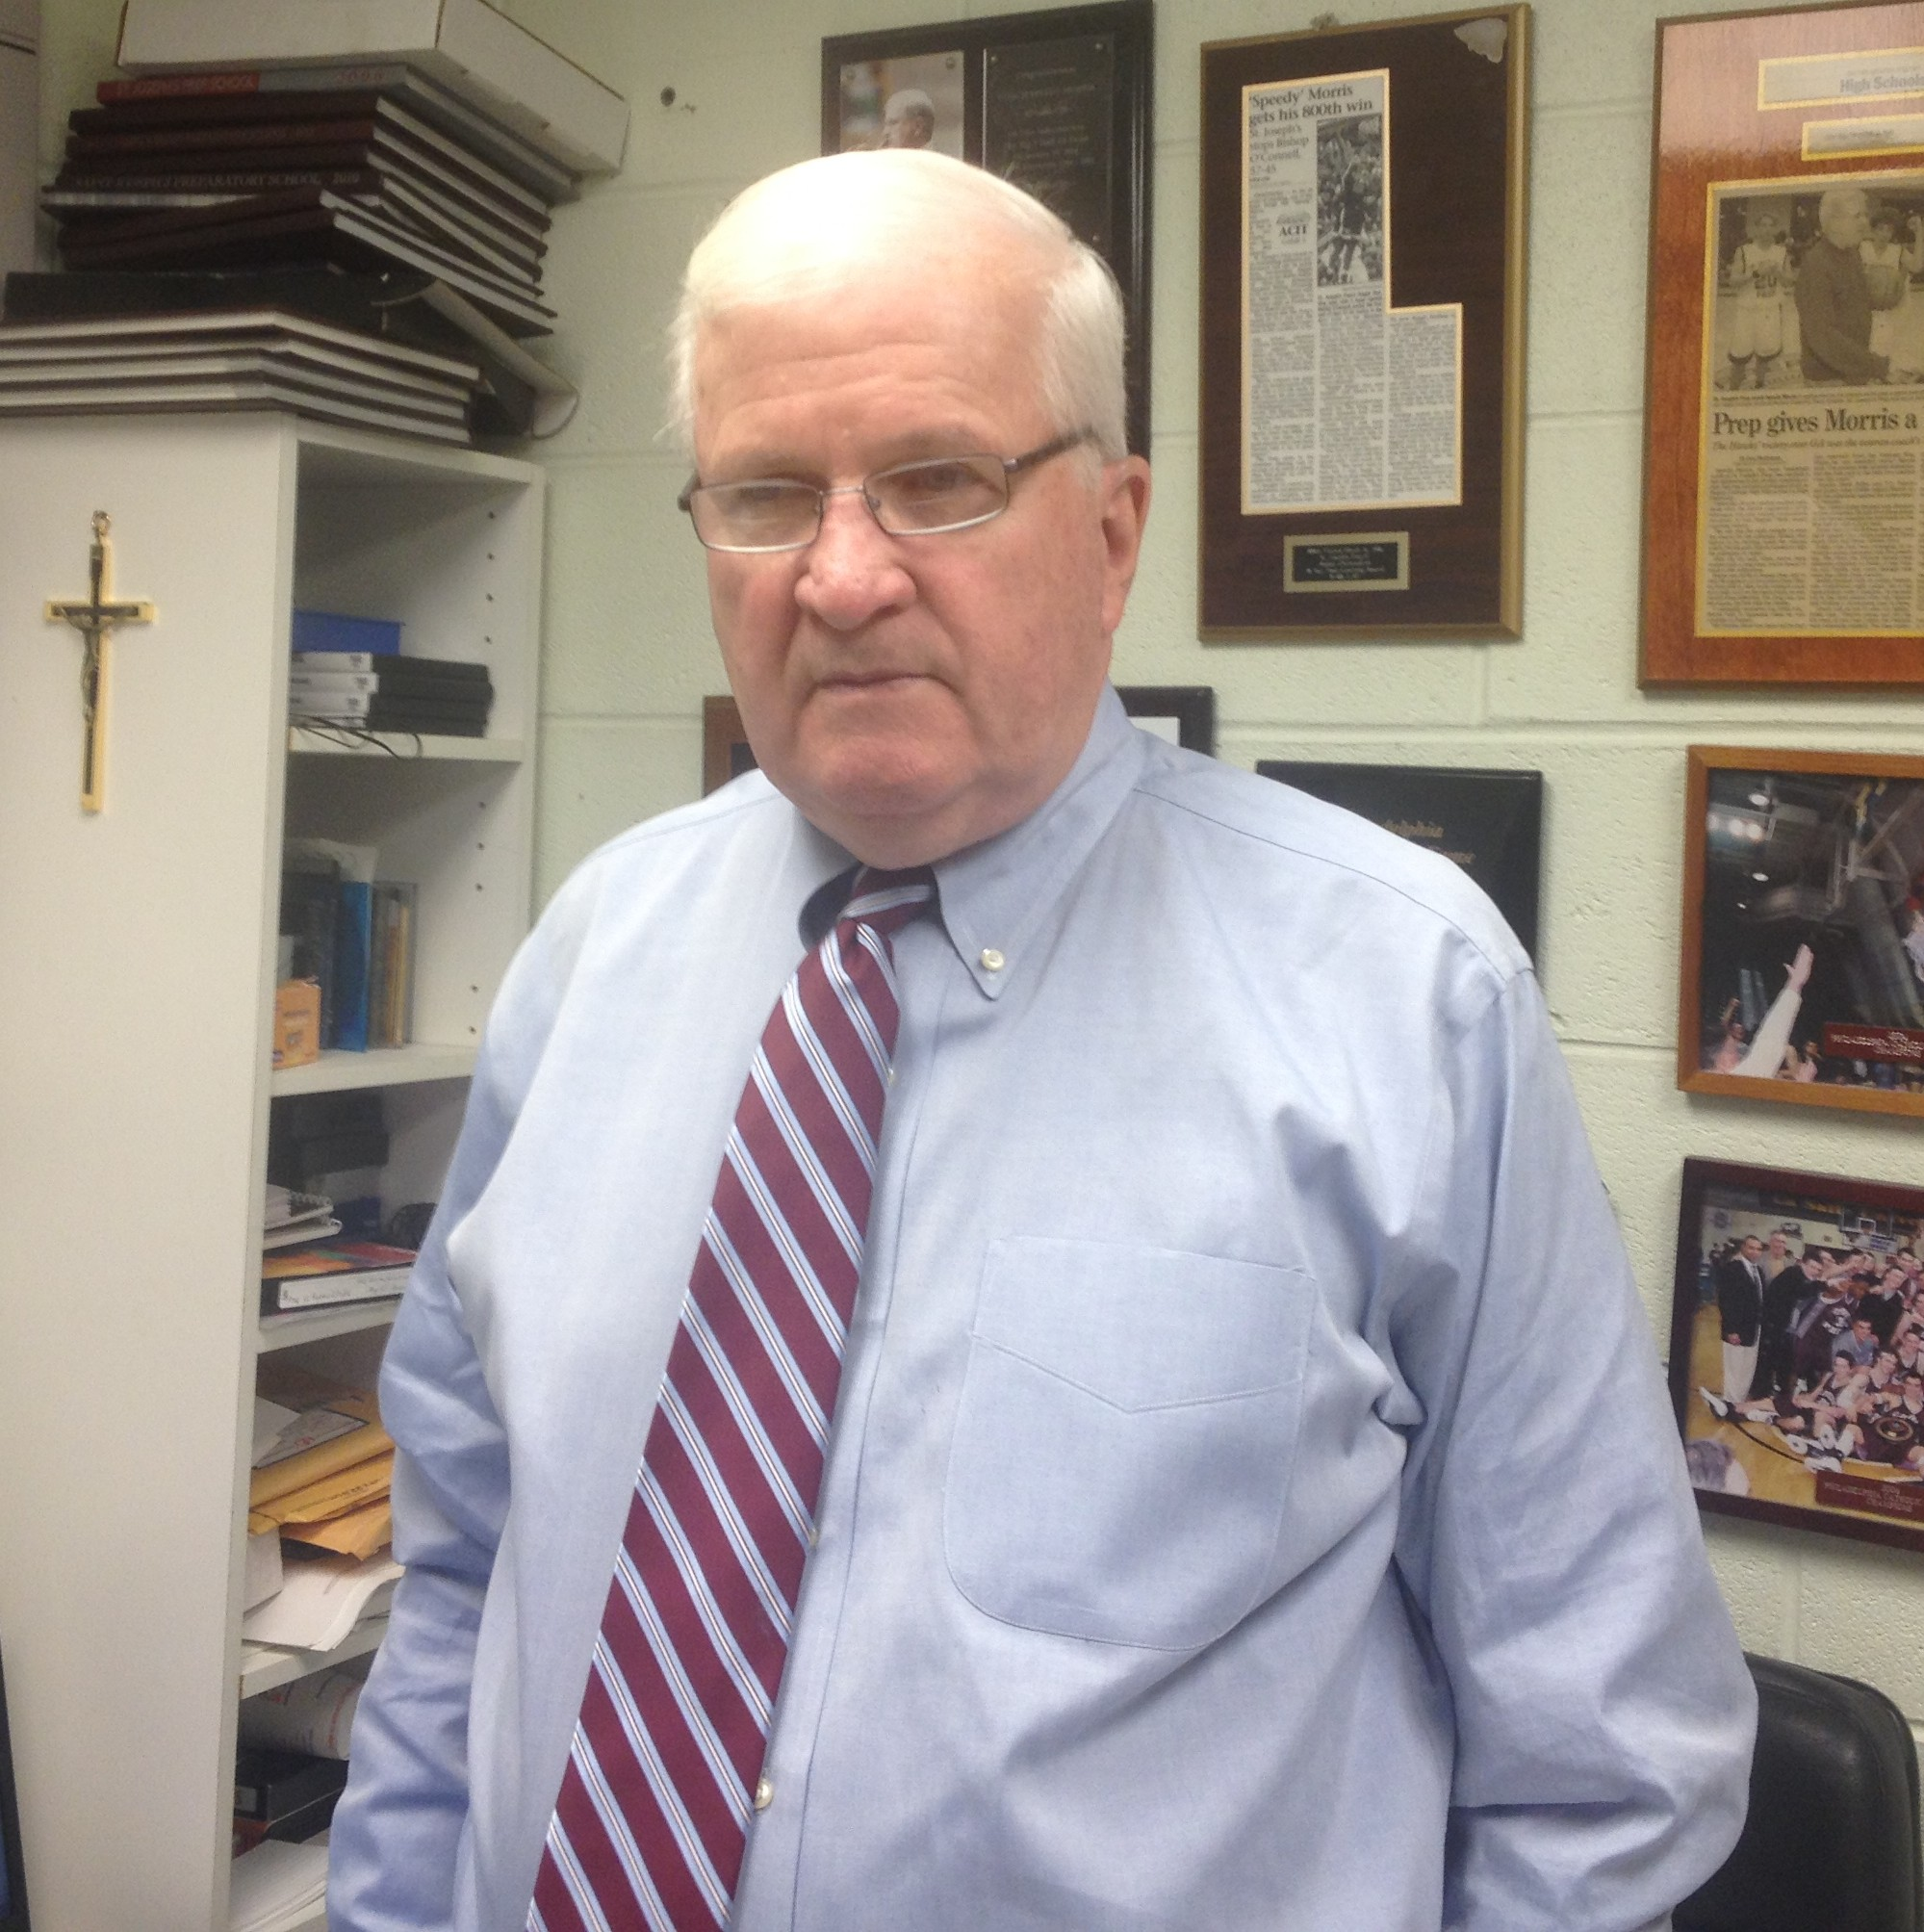 Saint Joseph's Prep boy's basketball coach Speedy Morris will be honored by the ECAC in early December.